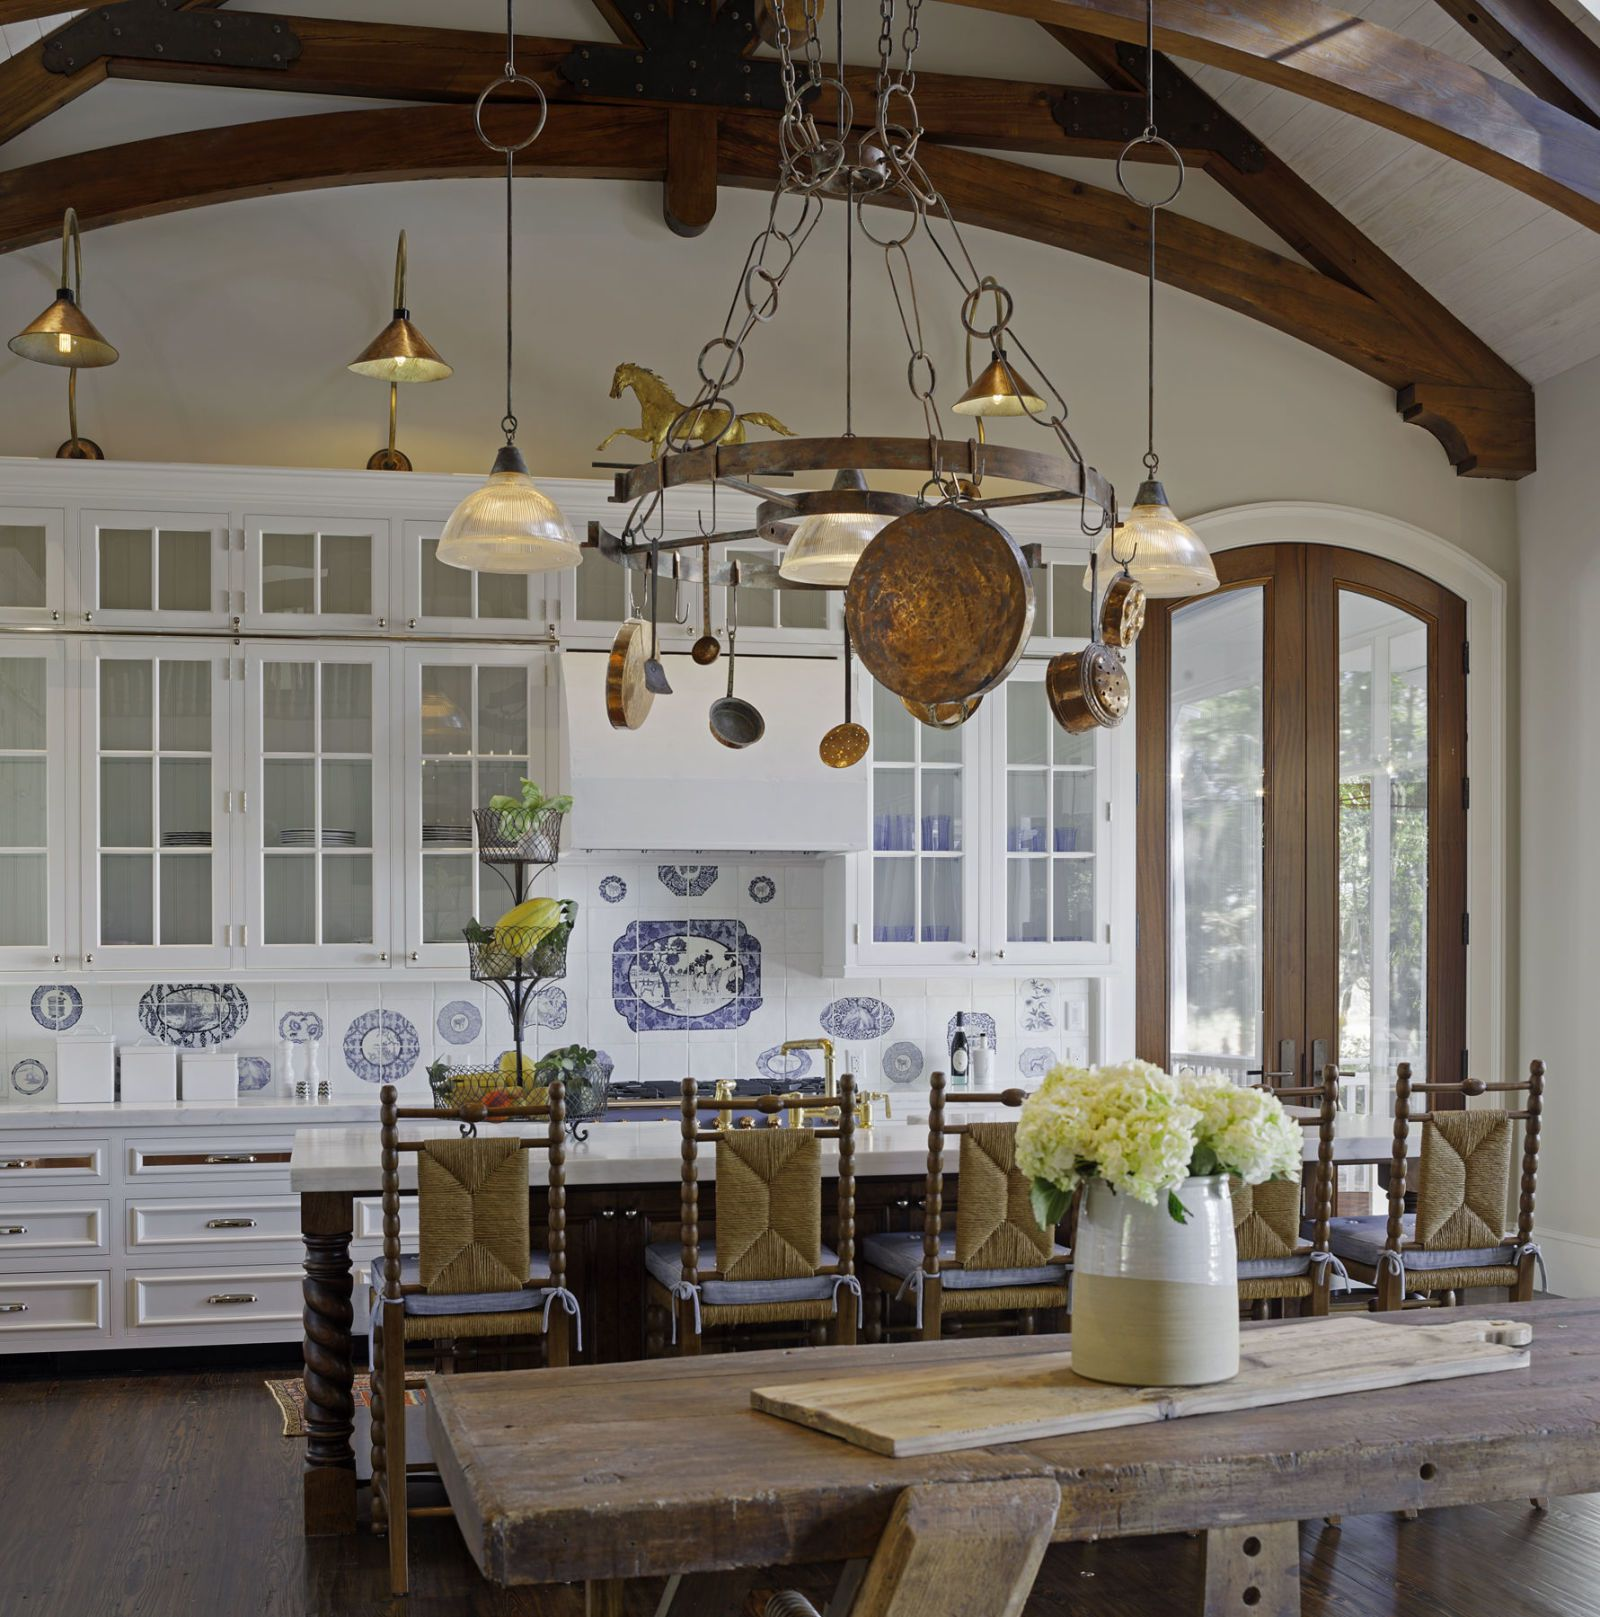 French country kitchens english country kitchen OETTGAX